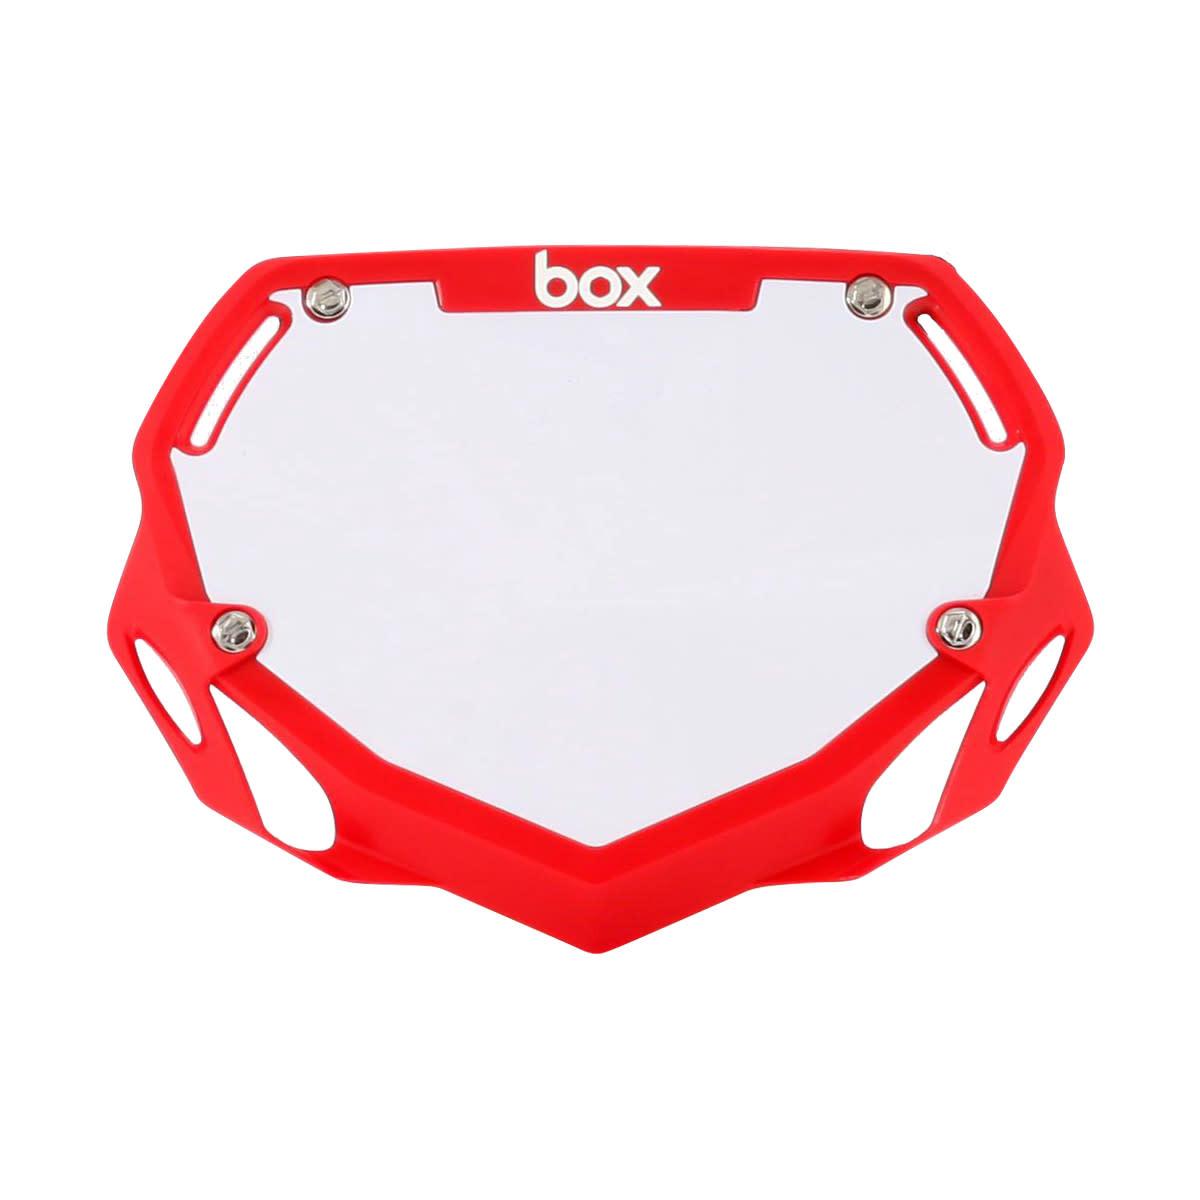 Box Components Box Two Pro Red Number Plate